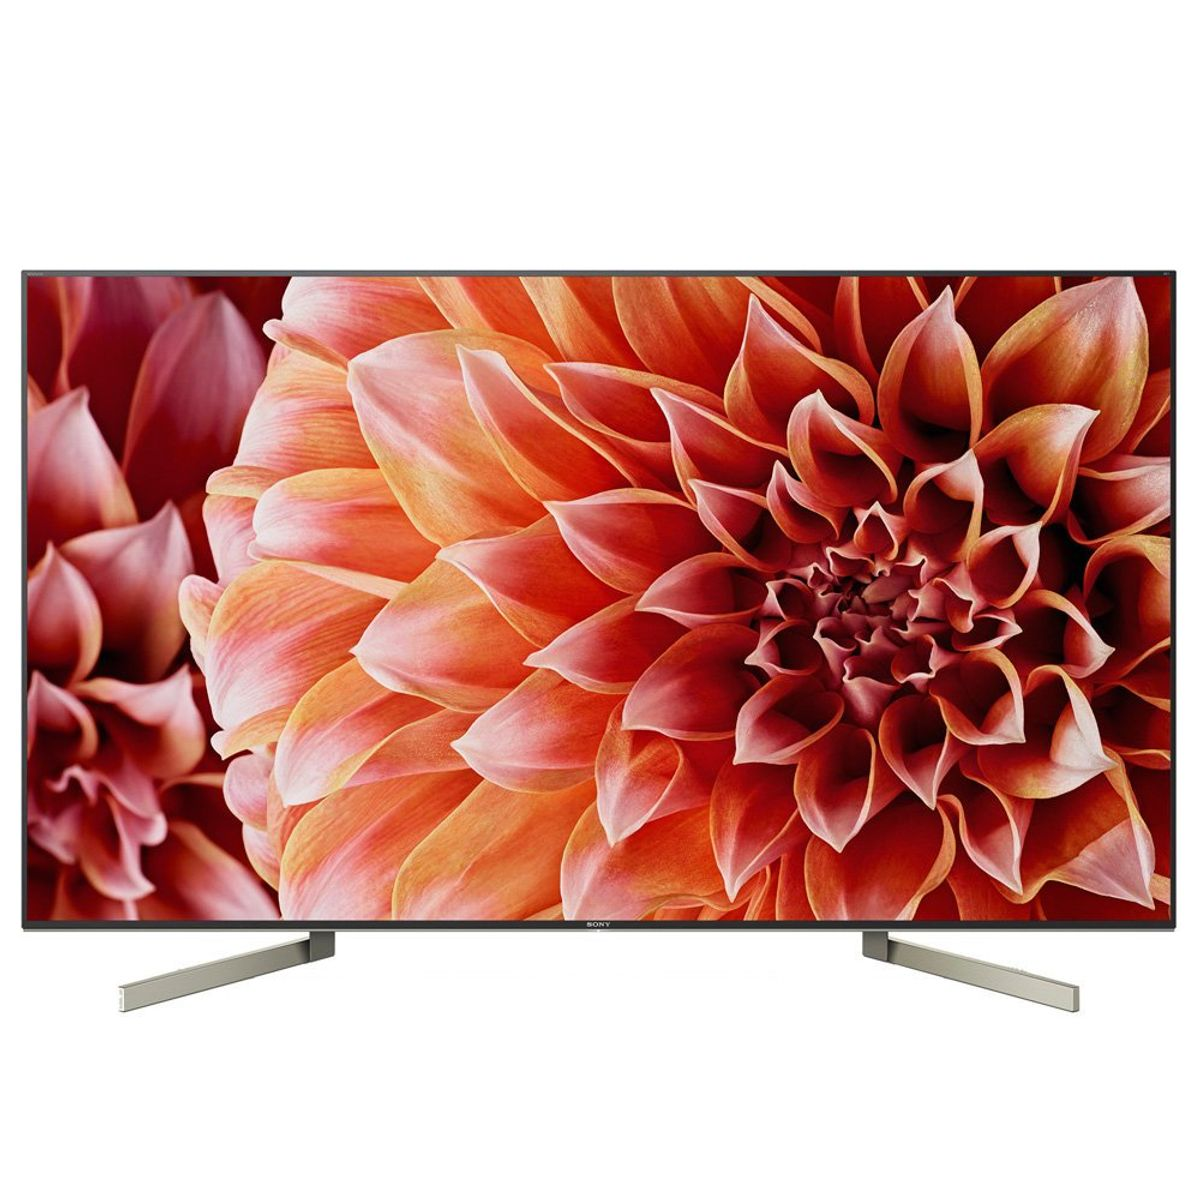 "Tv 65"" Led Sony 4k - Ultra Hd Smart - Xbr-65x905f"